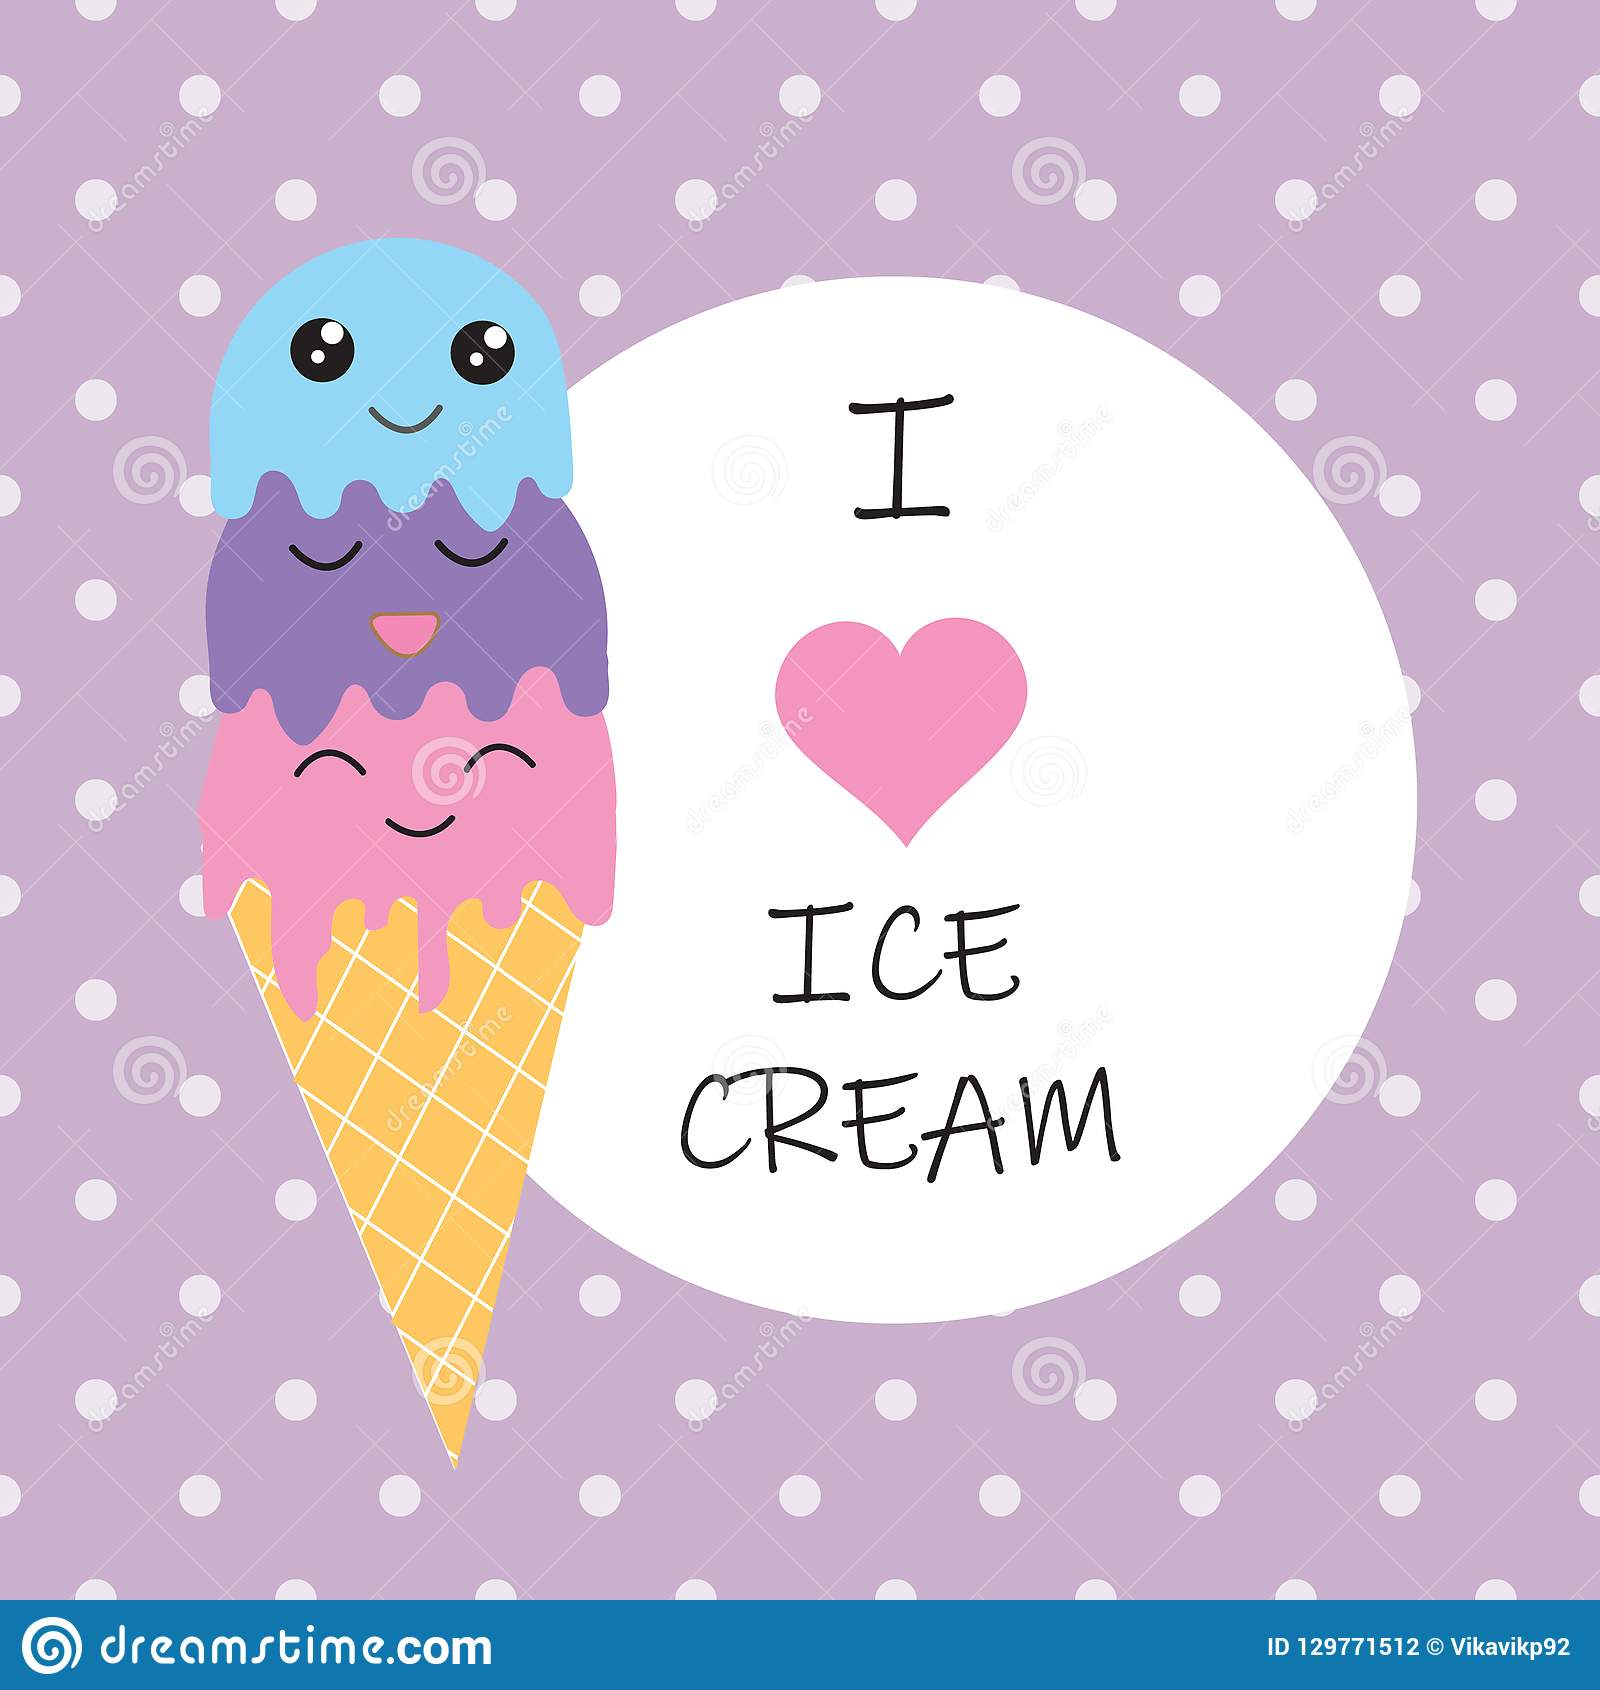 Seamless Ice Cream Background: I Love Ice Cream Poster On Seamless Violet Background